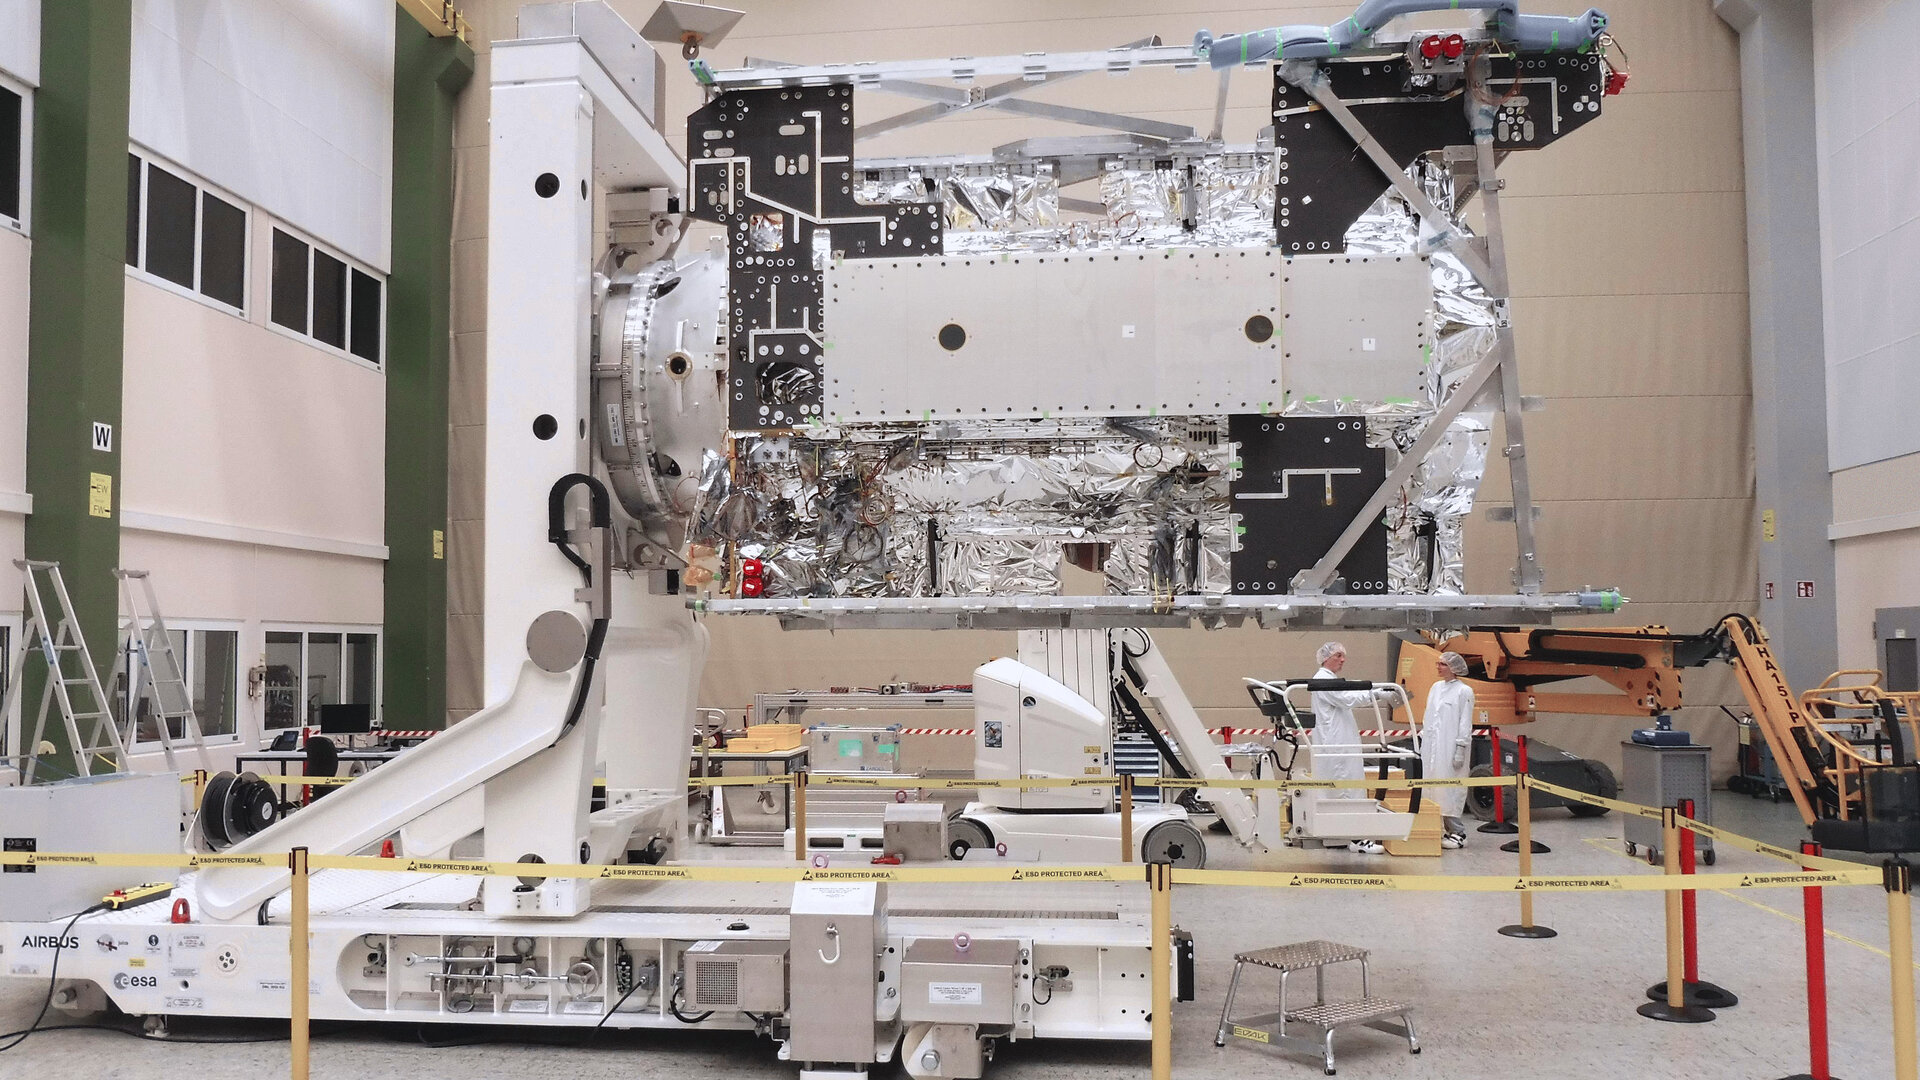 ESA's Jupiter explorer Juice at Airbus' facilities in Friedrichshafen, Germany, ready for final integration